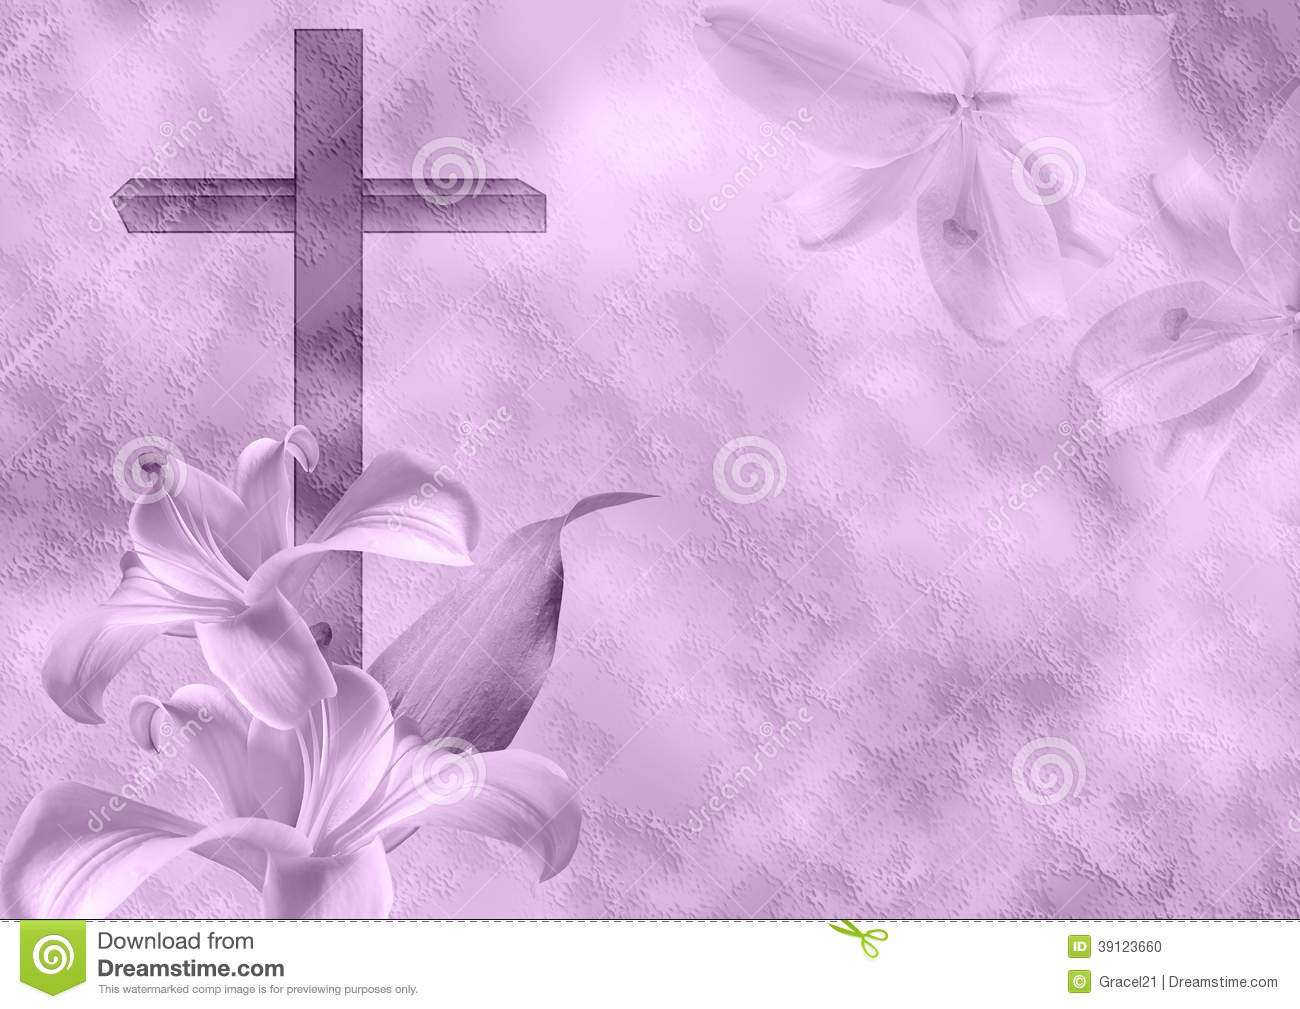 Christian Funeral Clipart Clipart Kid – Funeral Program Background